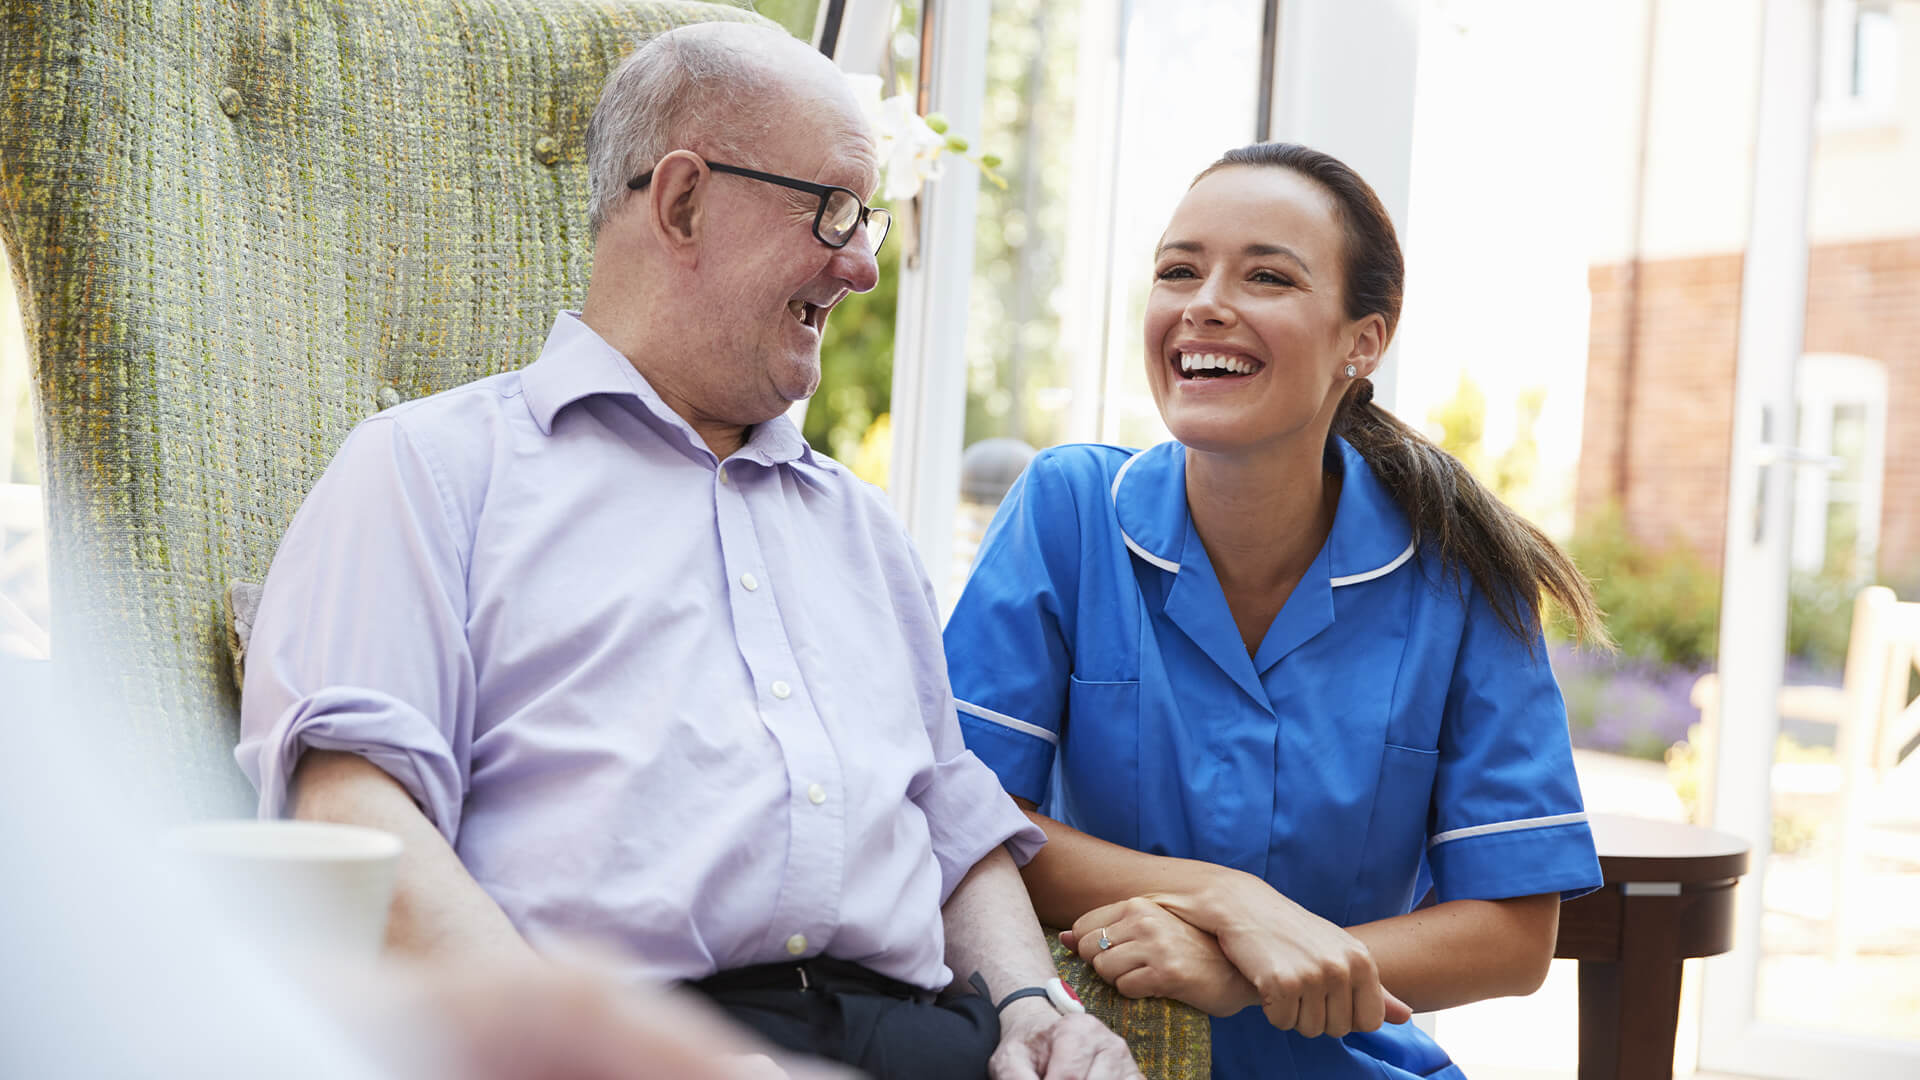 Here Are The Top 5 Reasons Why You Might Consider a Career in Care